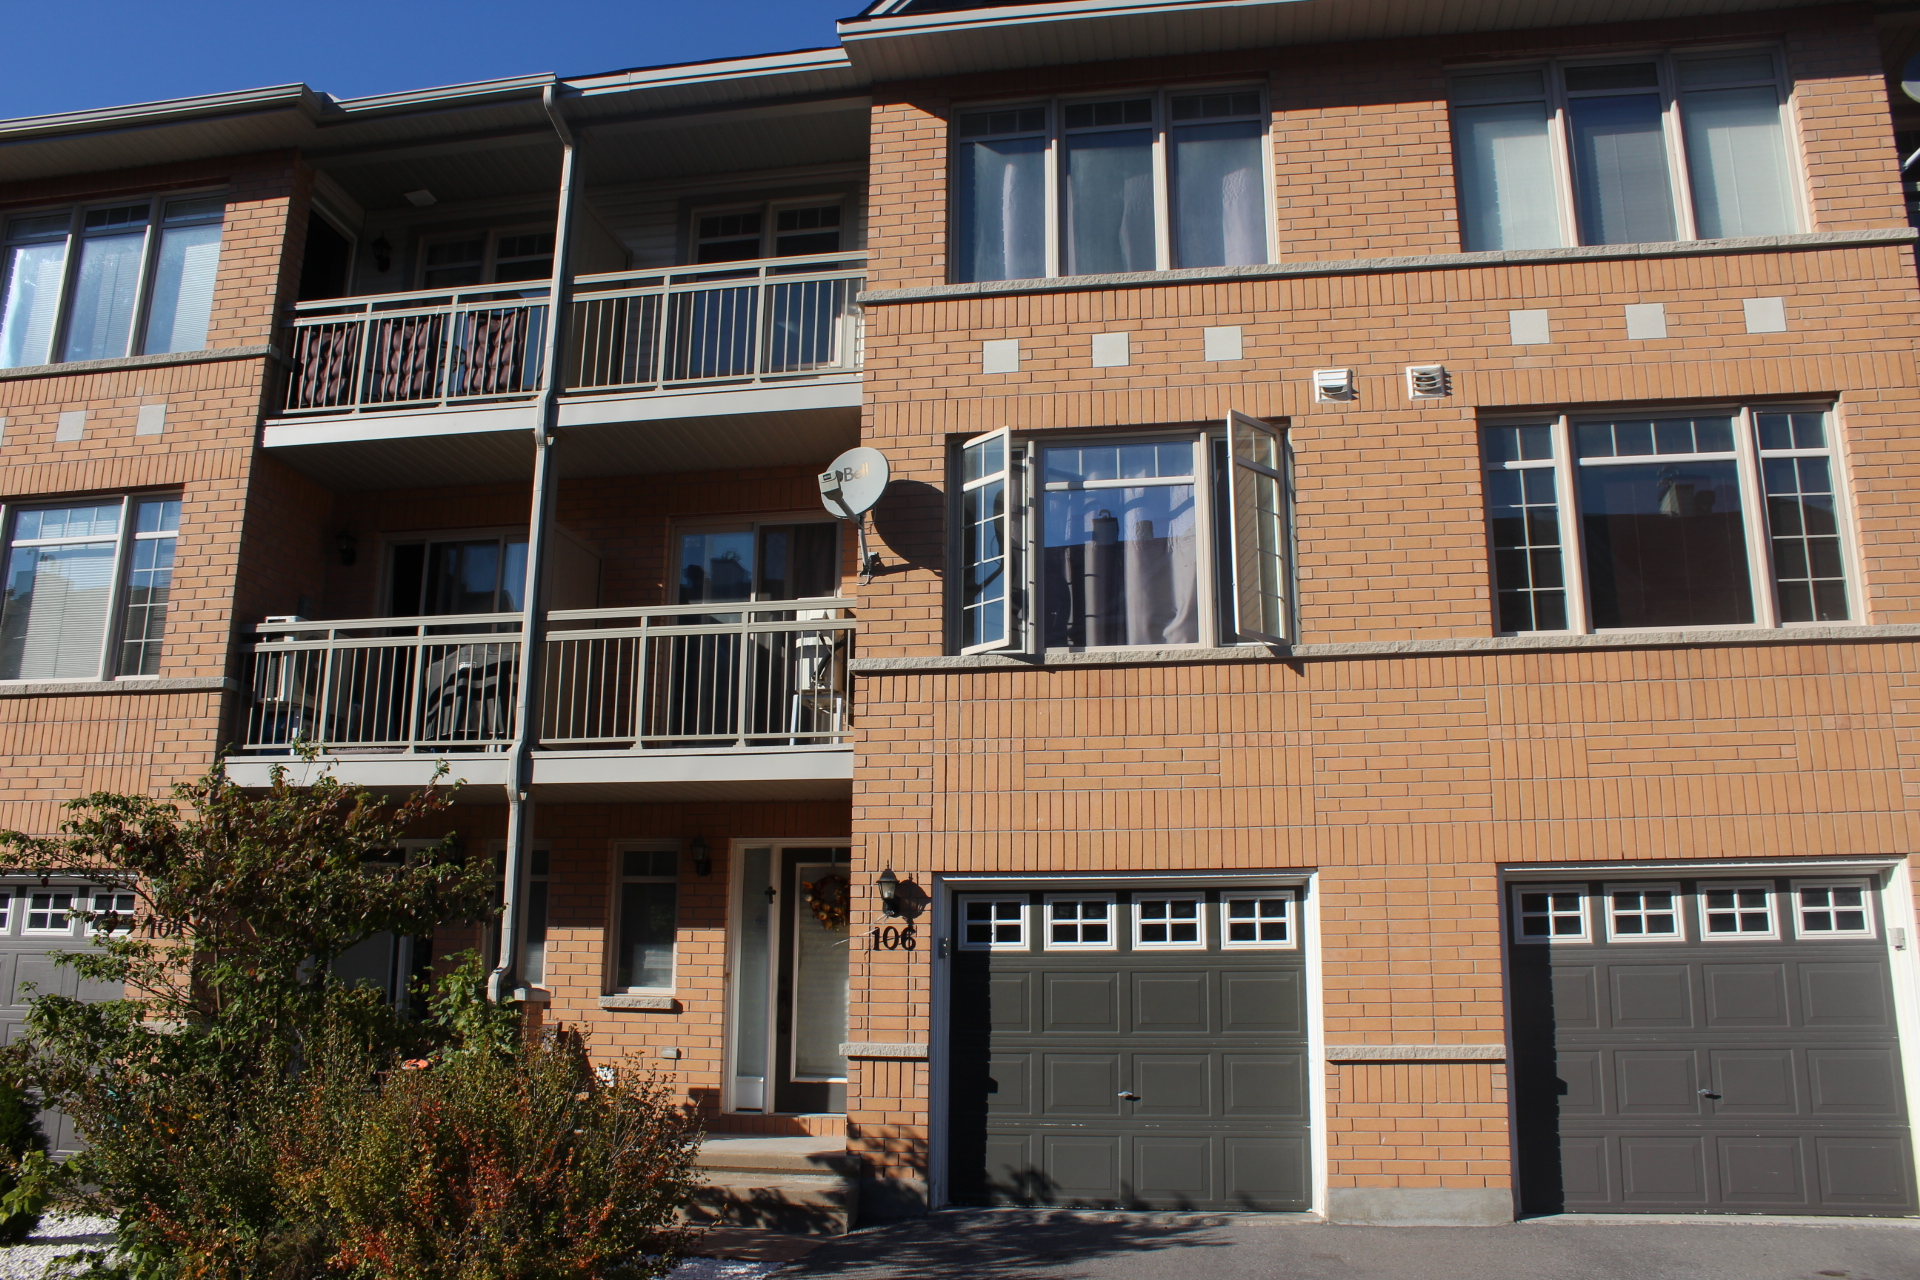 106 Quito Pvt - Lovely 3 Storey Executive Townhome with 2 Balconies minutes to Downtown Ottawa!